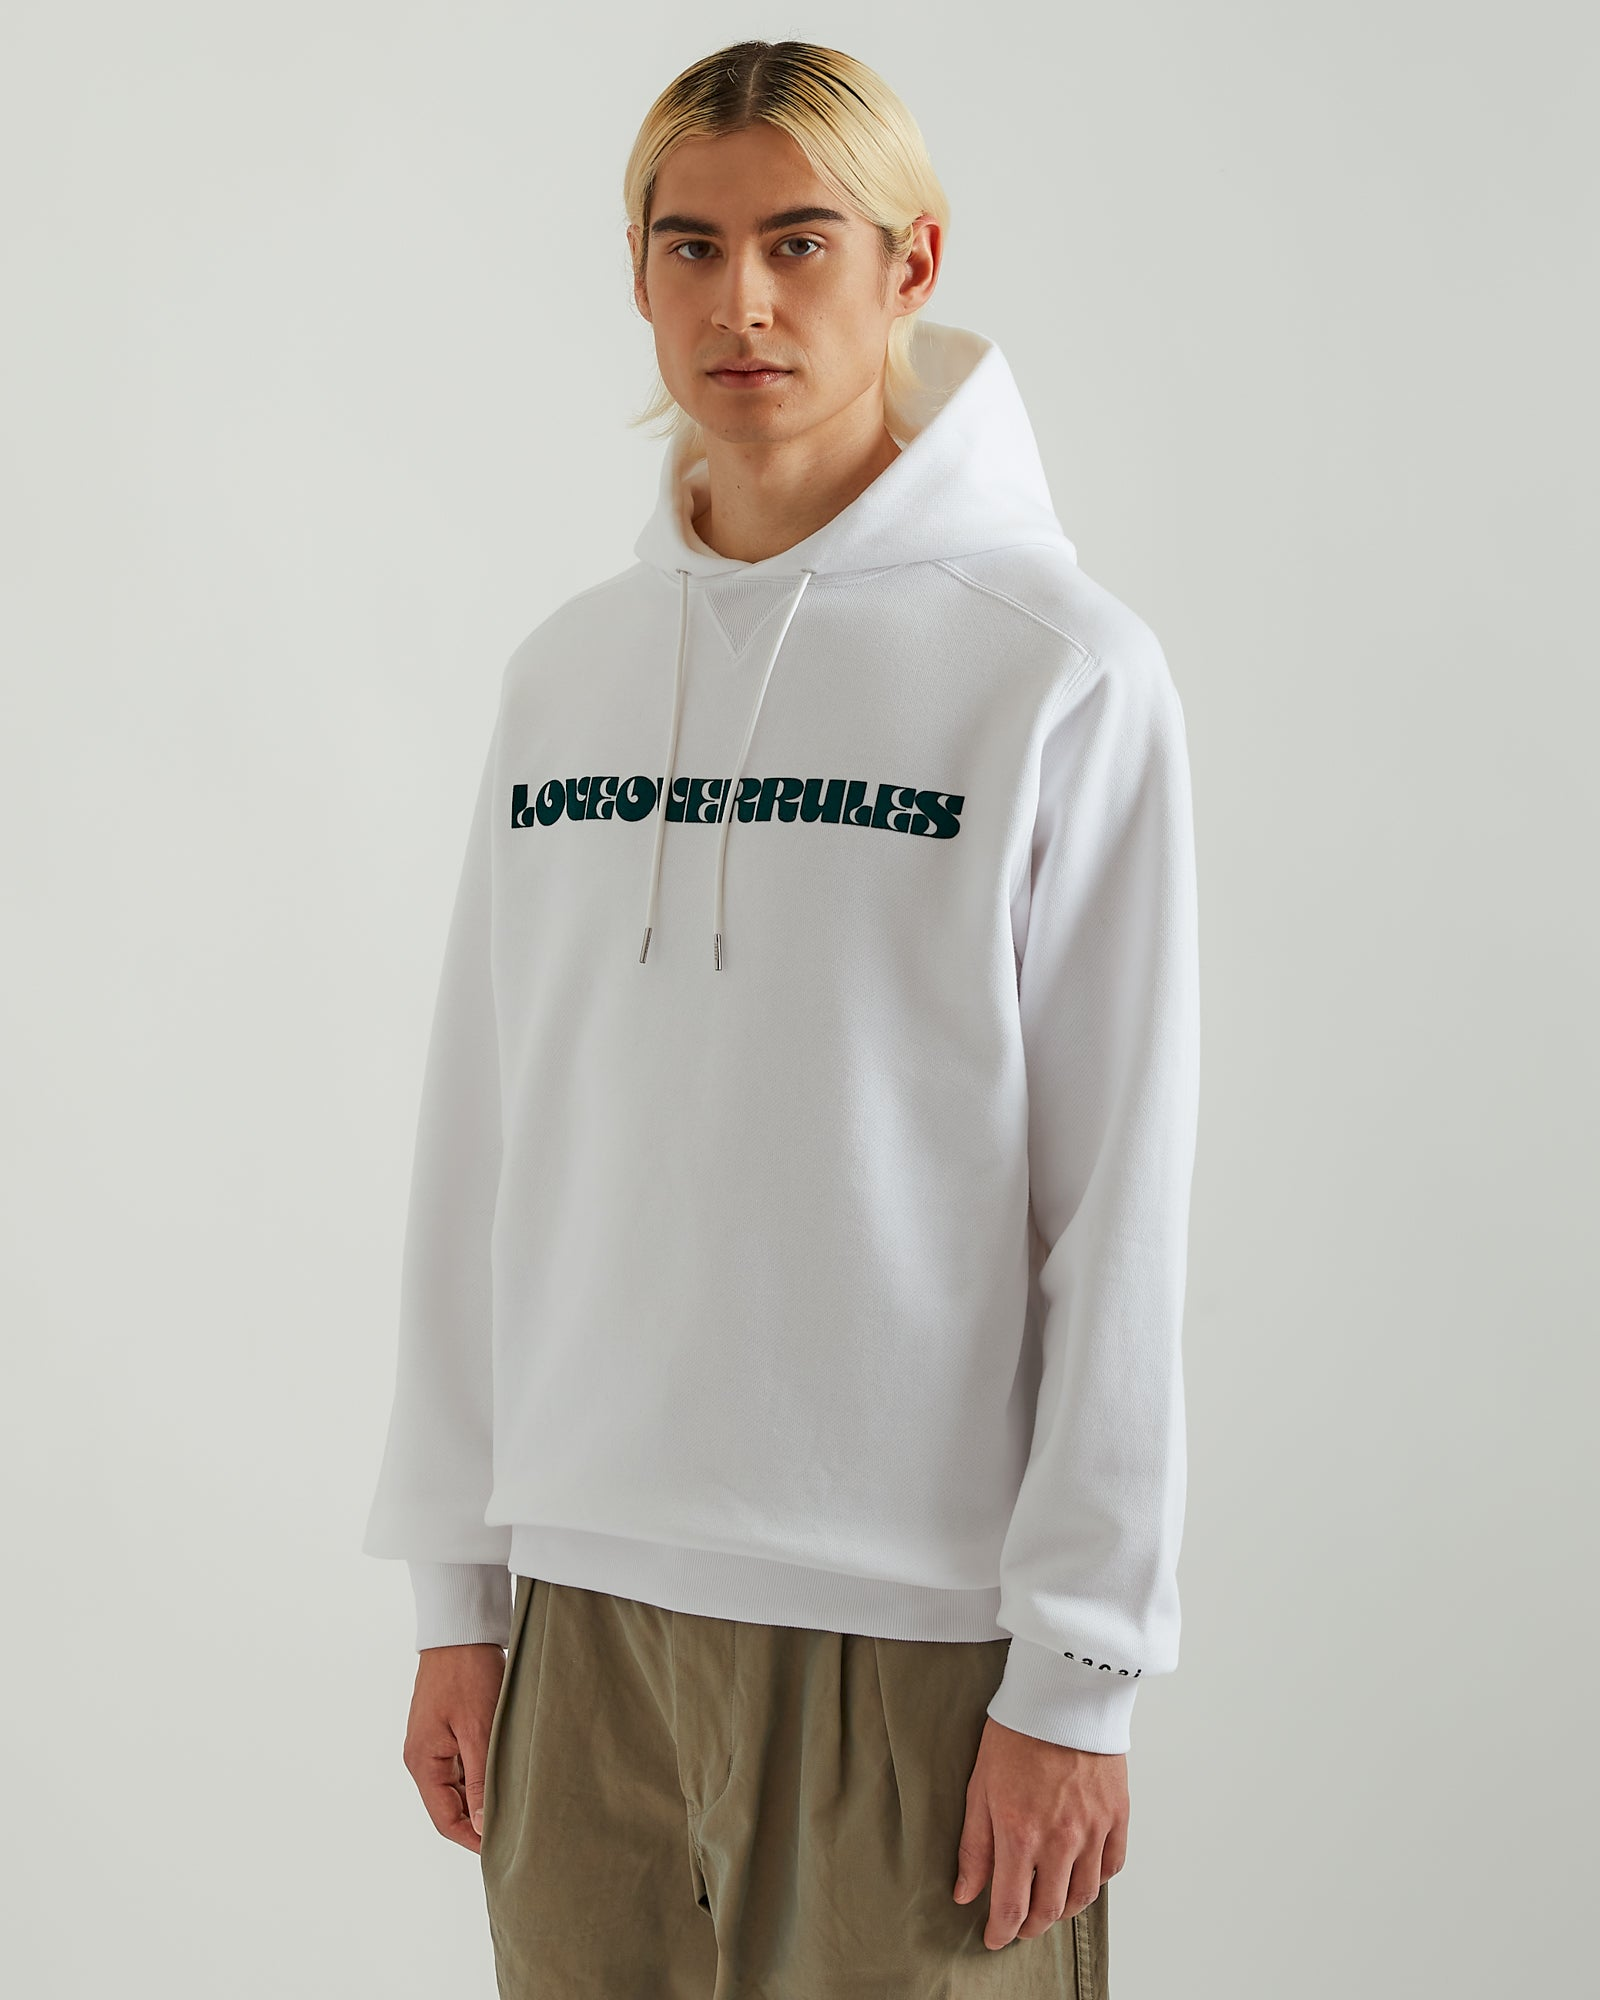 Love Over Rules Hoodie in White